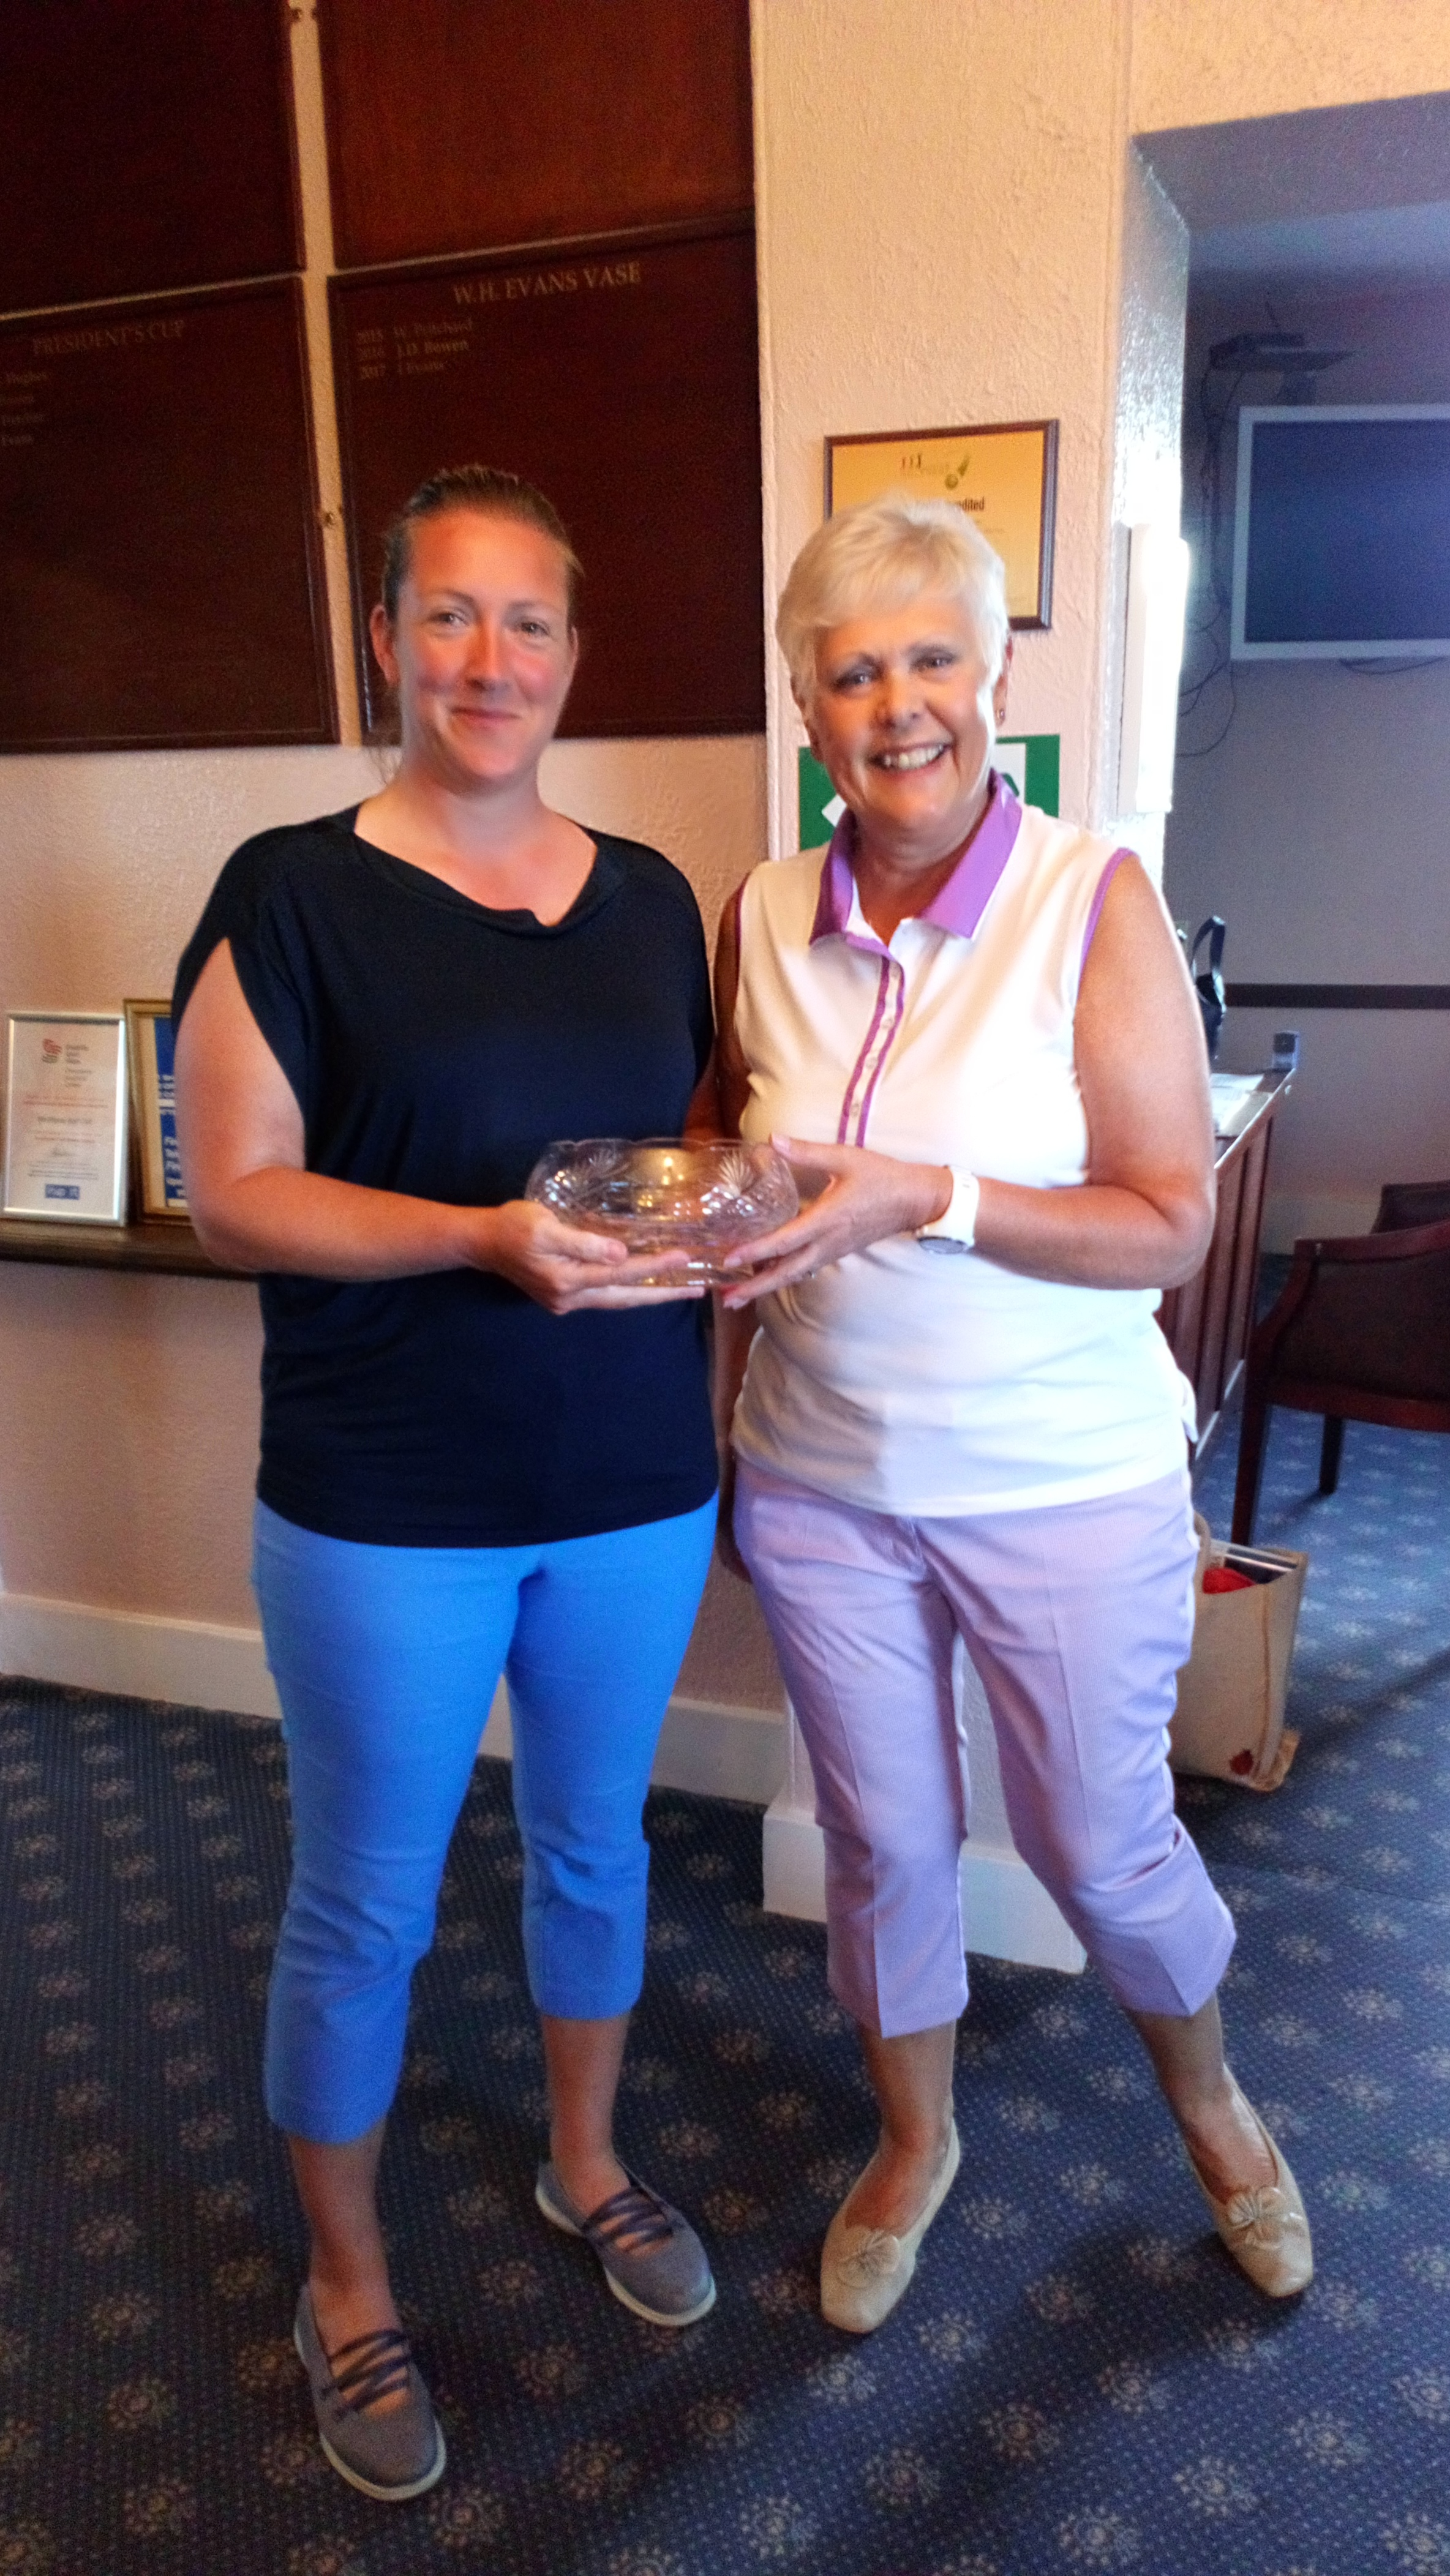 Ellen Jones of Welshpool receiving, somewhat appropriately, the Welshpool Crystal from Margaret Bowen, MWCGA Vice-Captain. Ellen also won the longest drive kindly given by Welshpool GC.